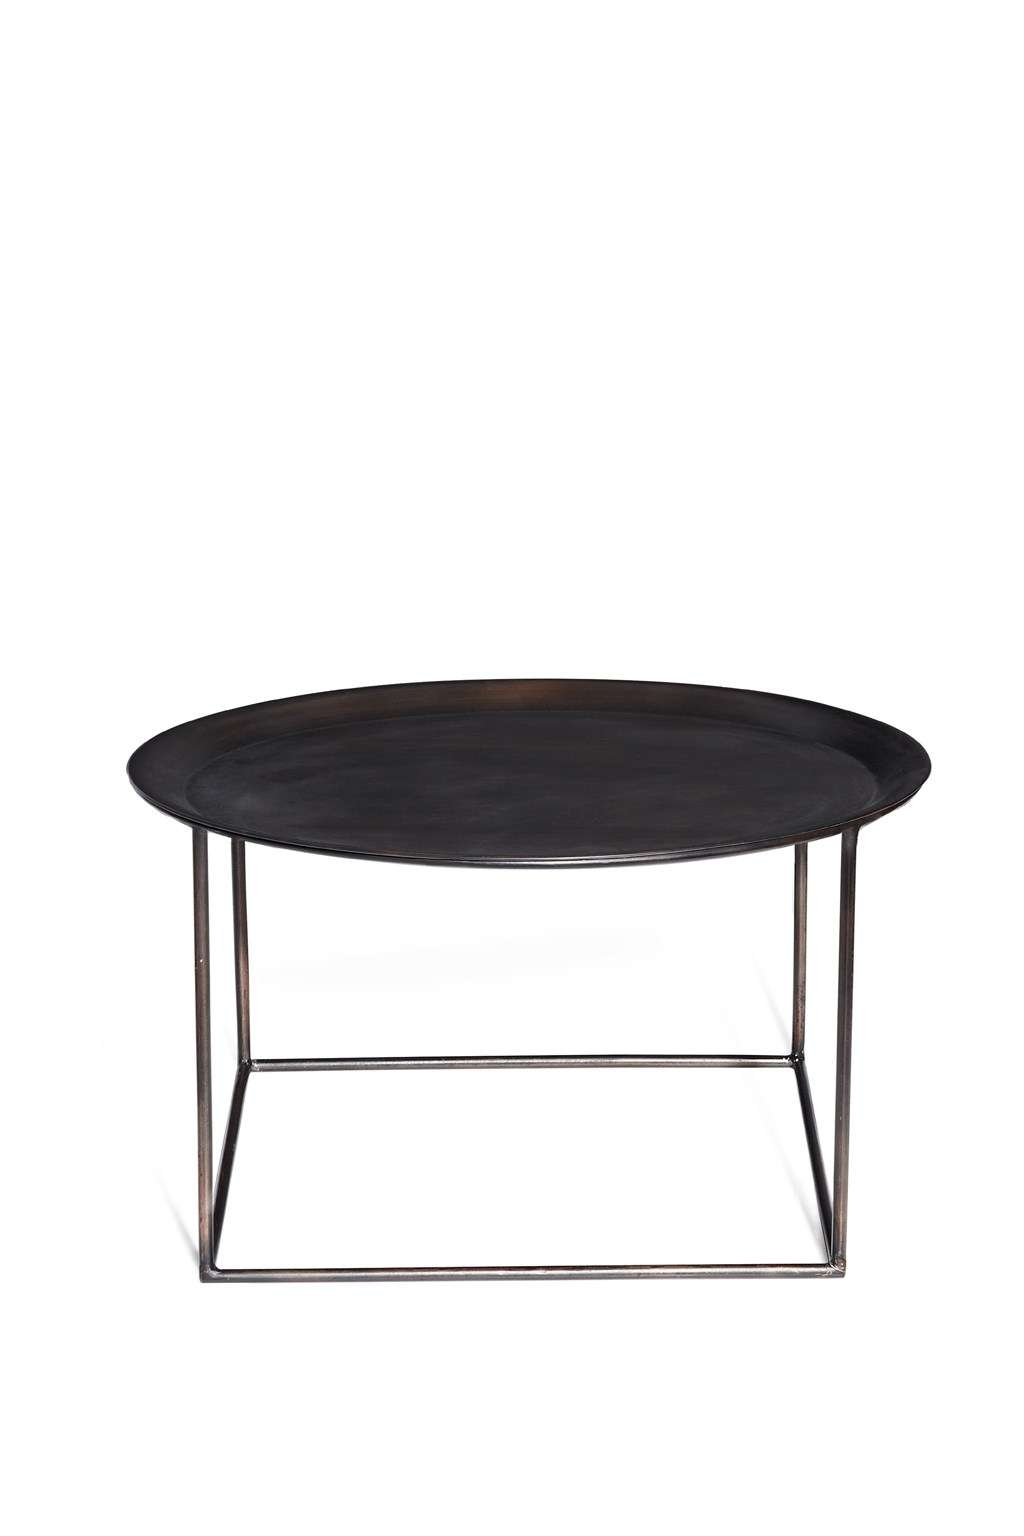 Preferred Round Steel Coffee Tables Intended For Coffee Table Small Square Coffee Table Round Steel Coffee Table (View 11 of 20)